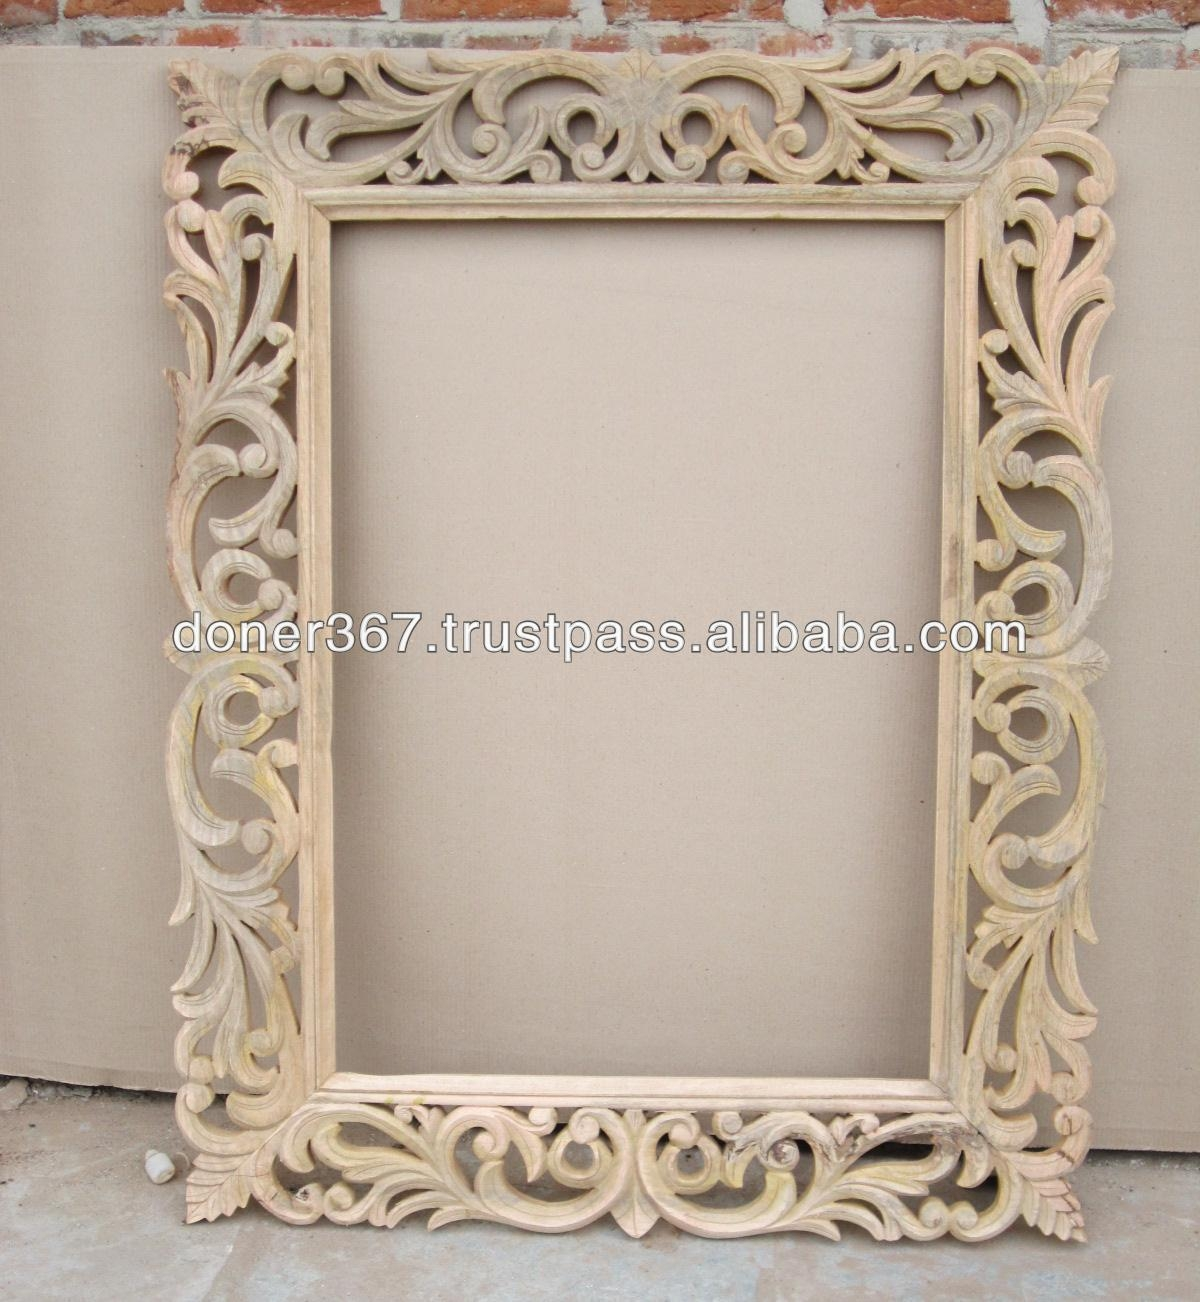 Interior Design Exquisite Bathroom Mirror Frames In Frames Mirrors (Image 13 of 20)